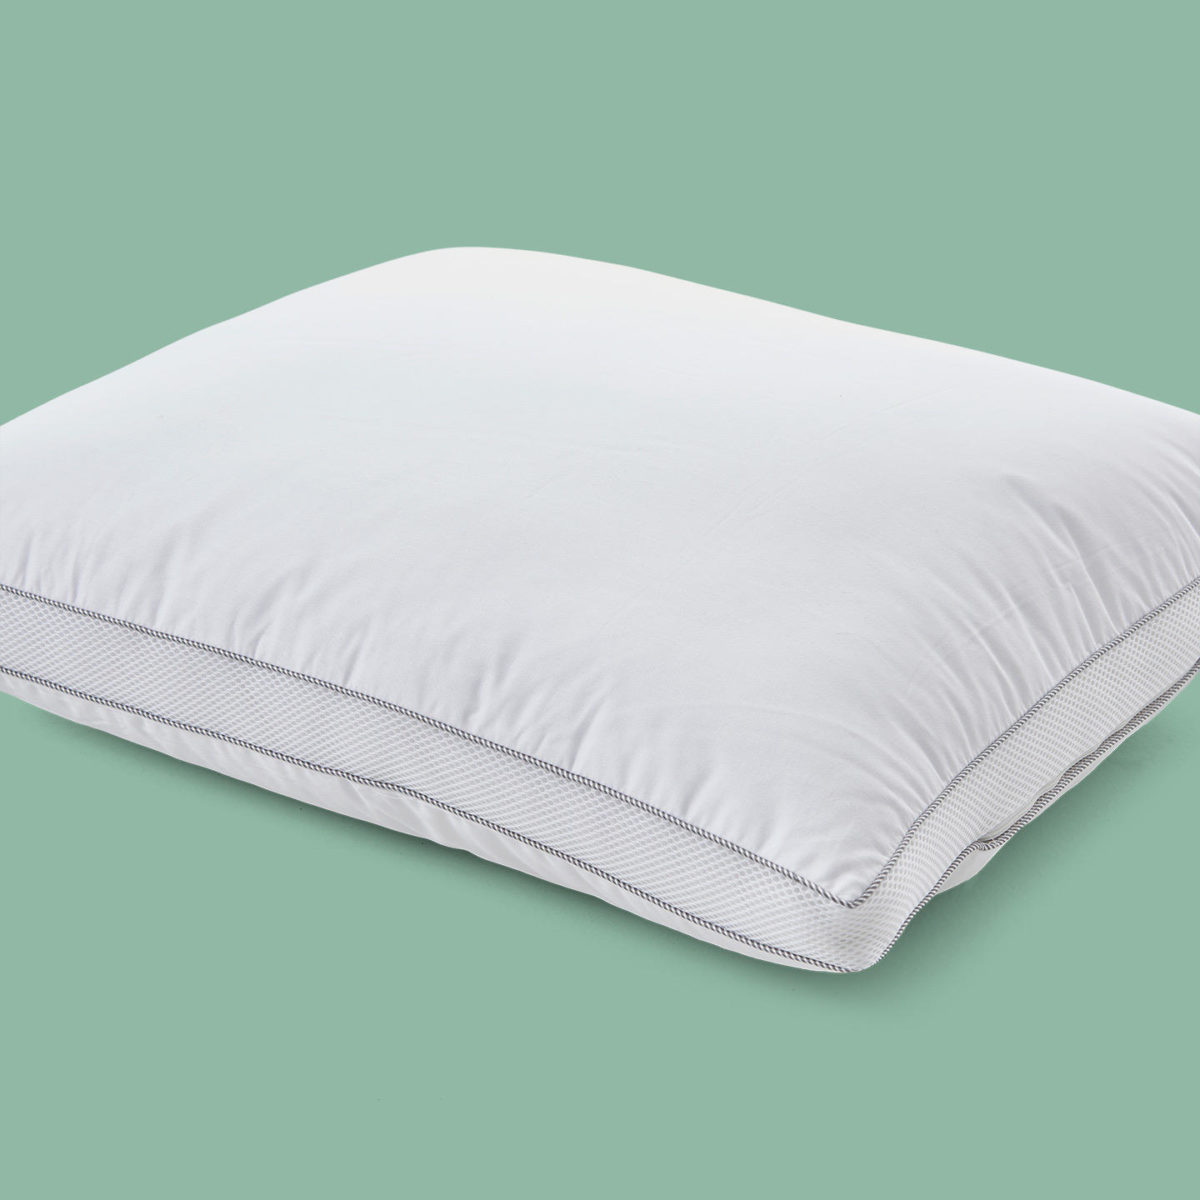 Pillow_deluxe_nature_4